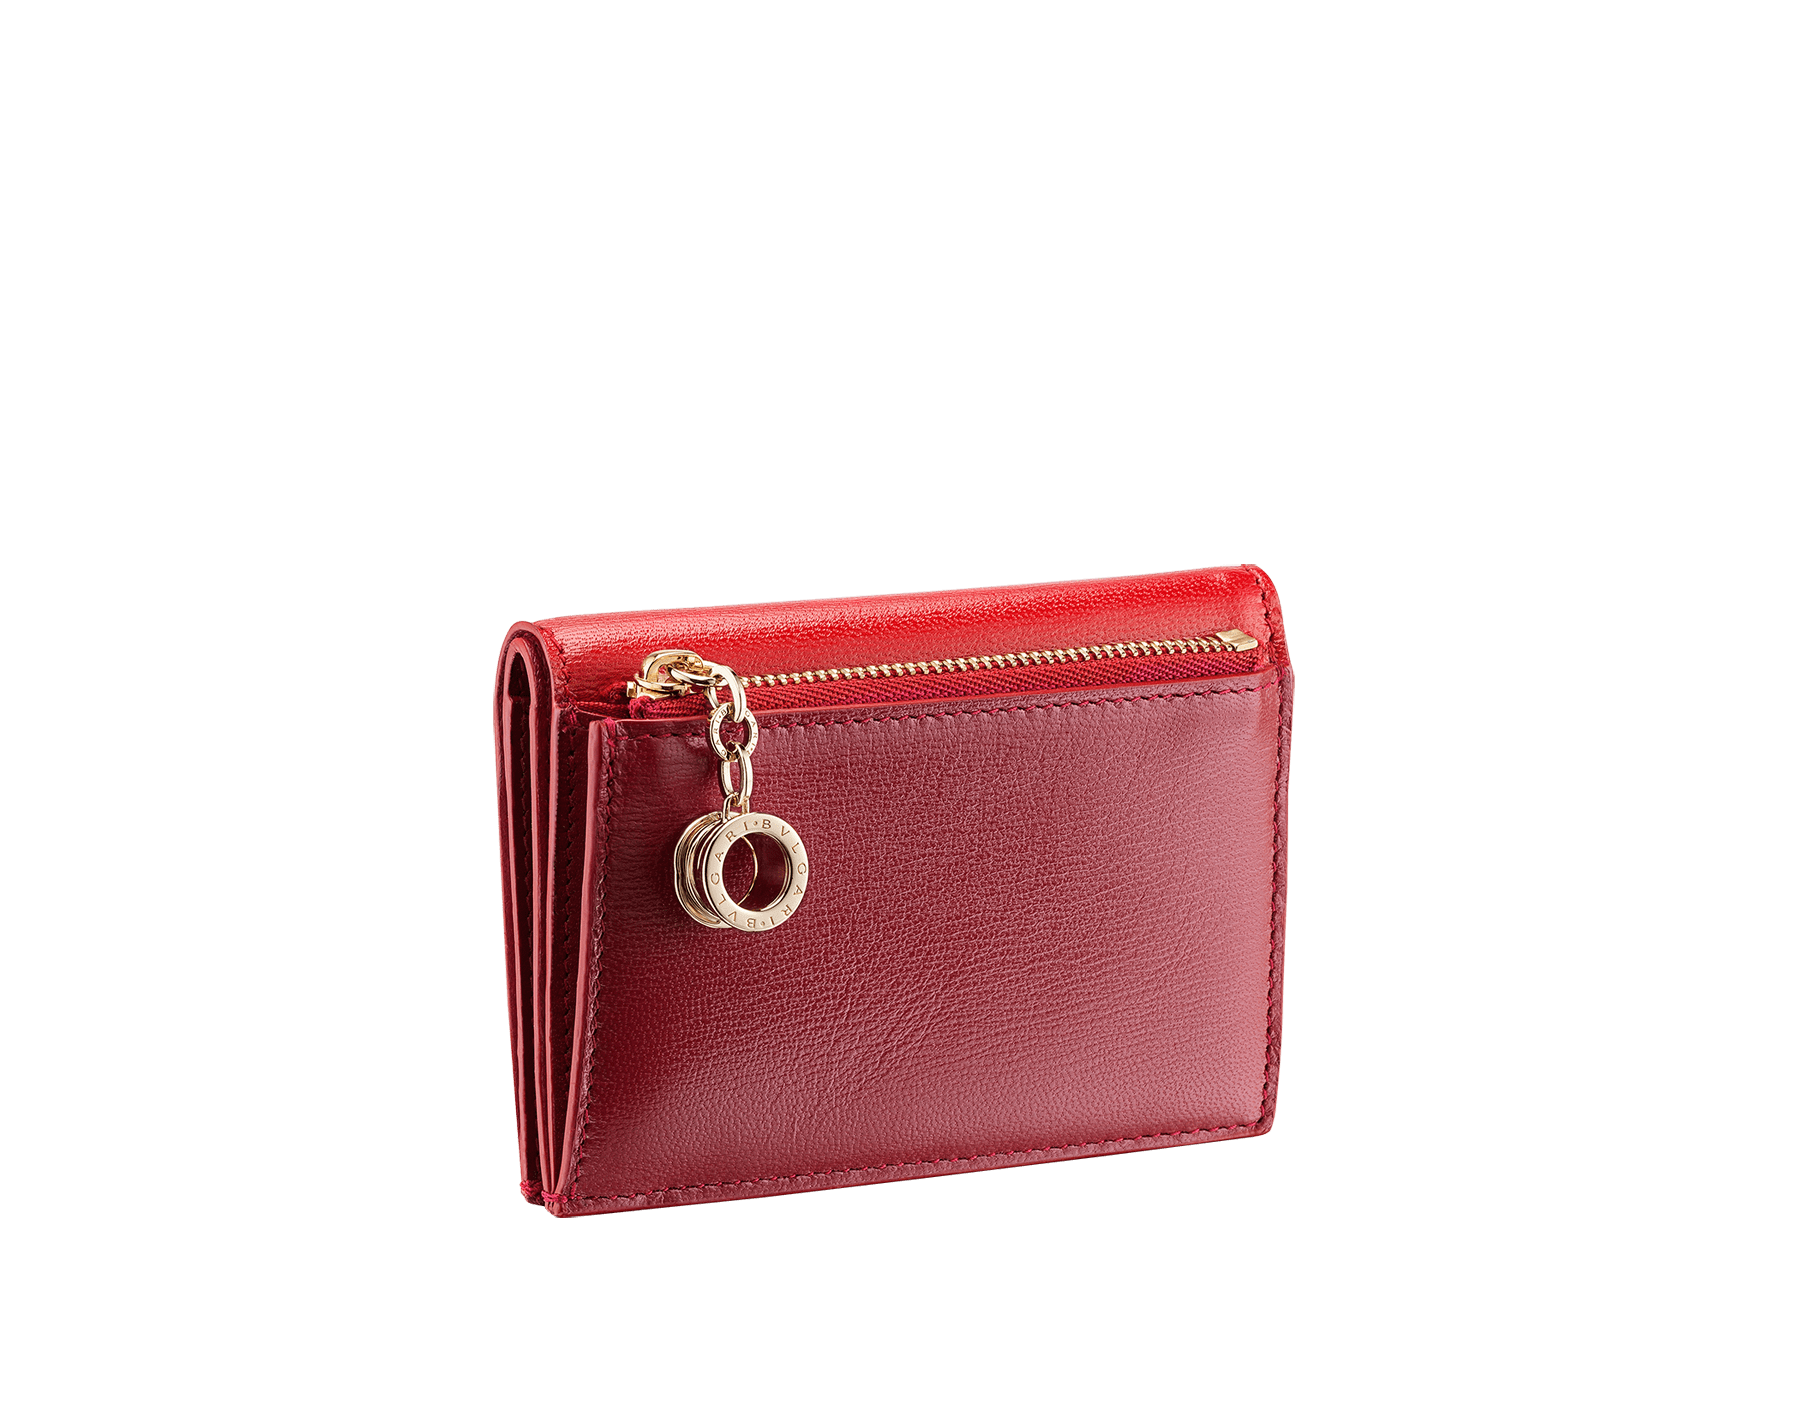 B.zero1 double folded credit card holder in carmine jasper and ruby red goatskin. Iconic B.zero1 charm in light gold plated brass. 289151 image 3